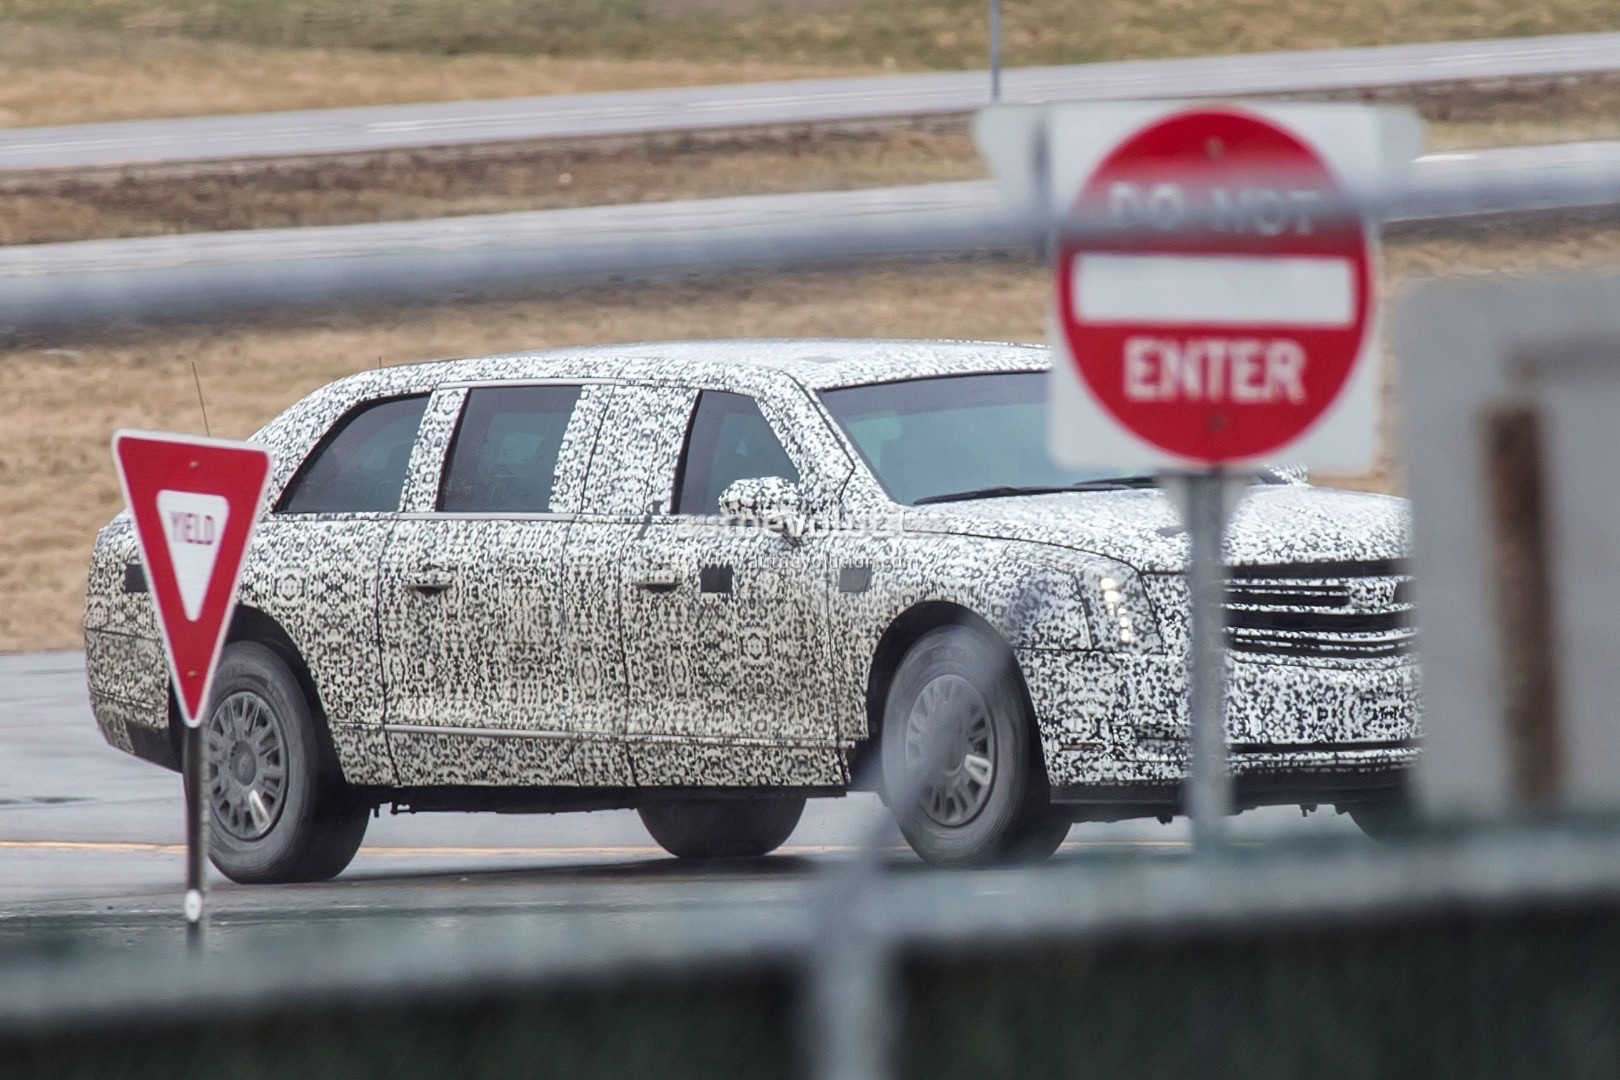 2018 Beast 2.0 Presidential Limo Spied, Looks Absolutely Massive ...